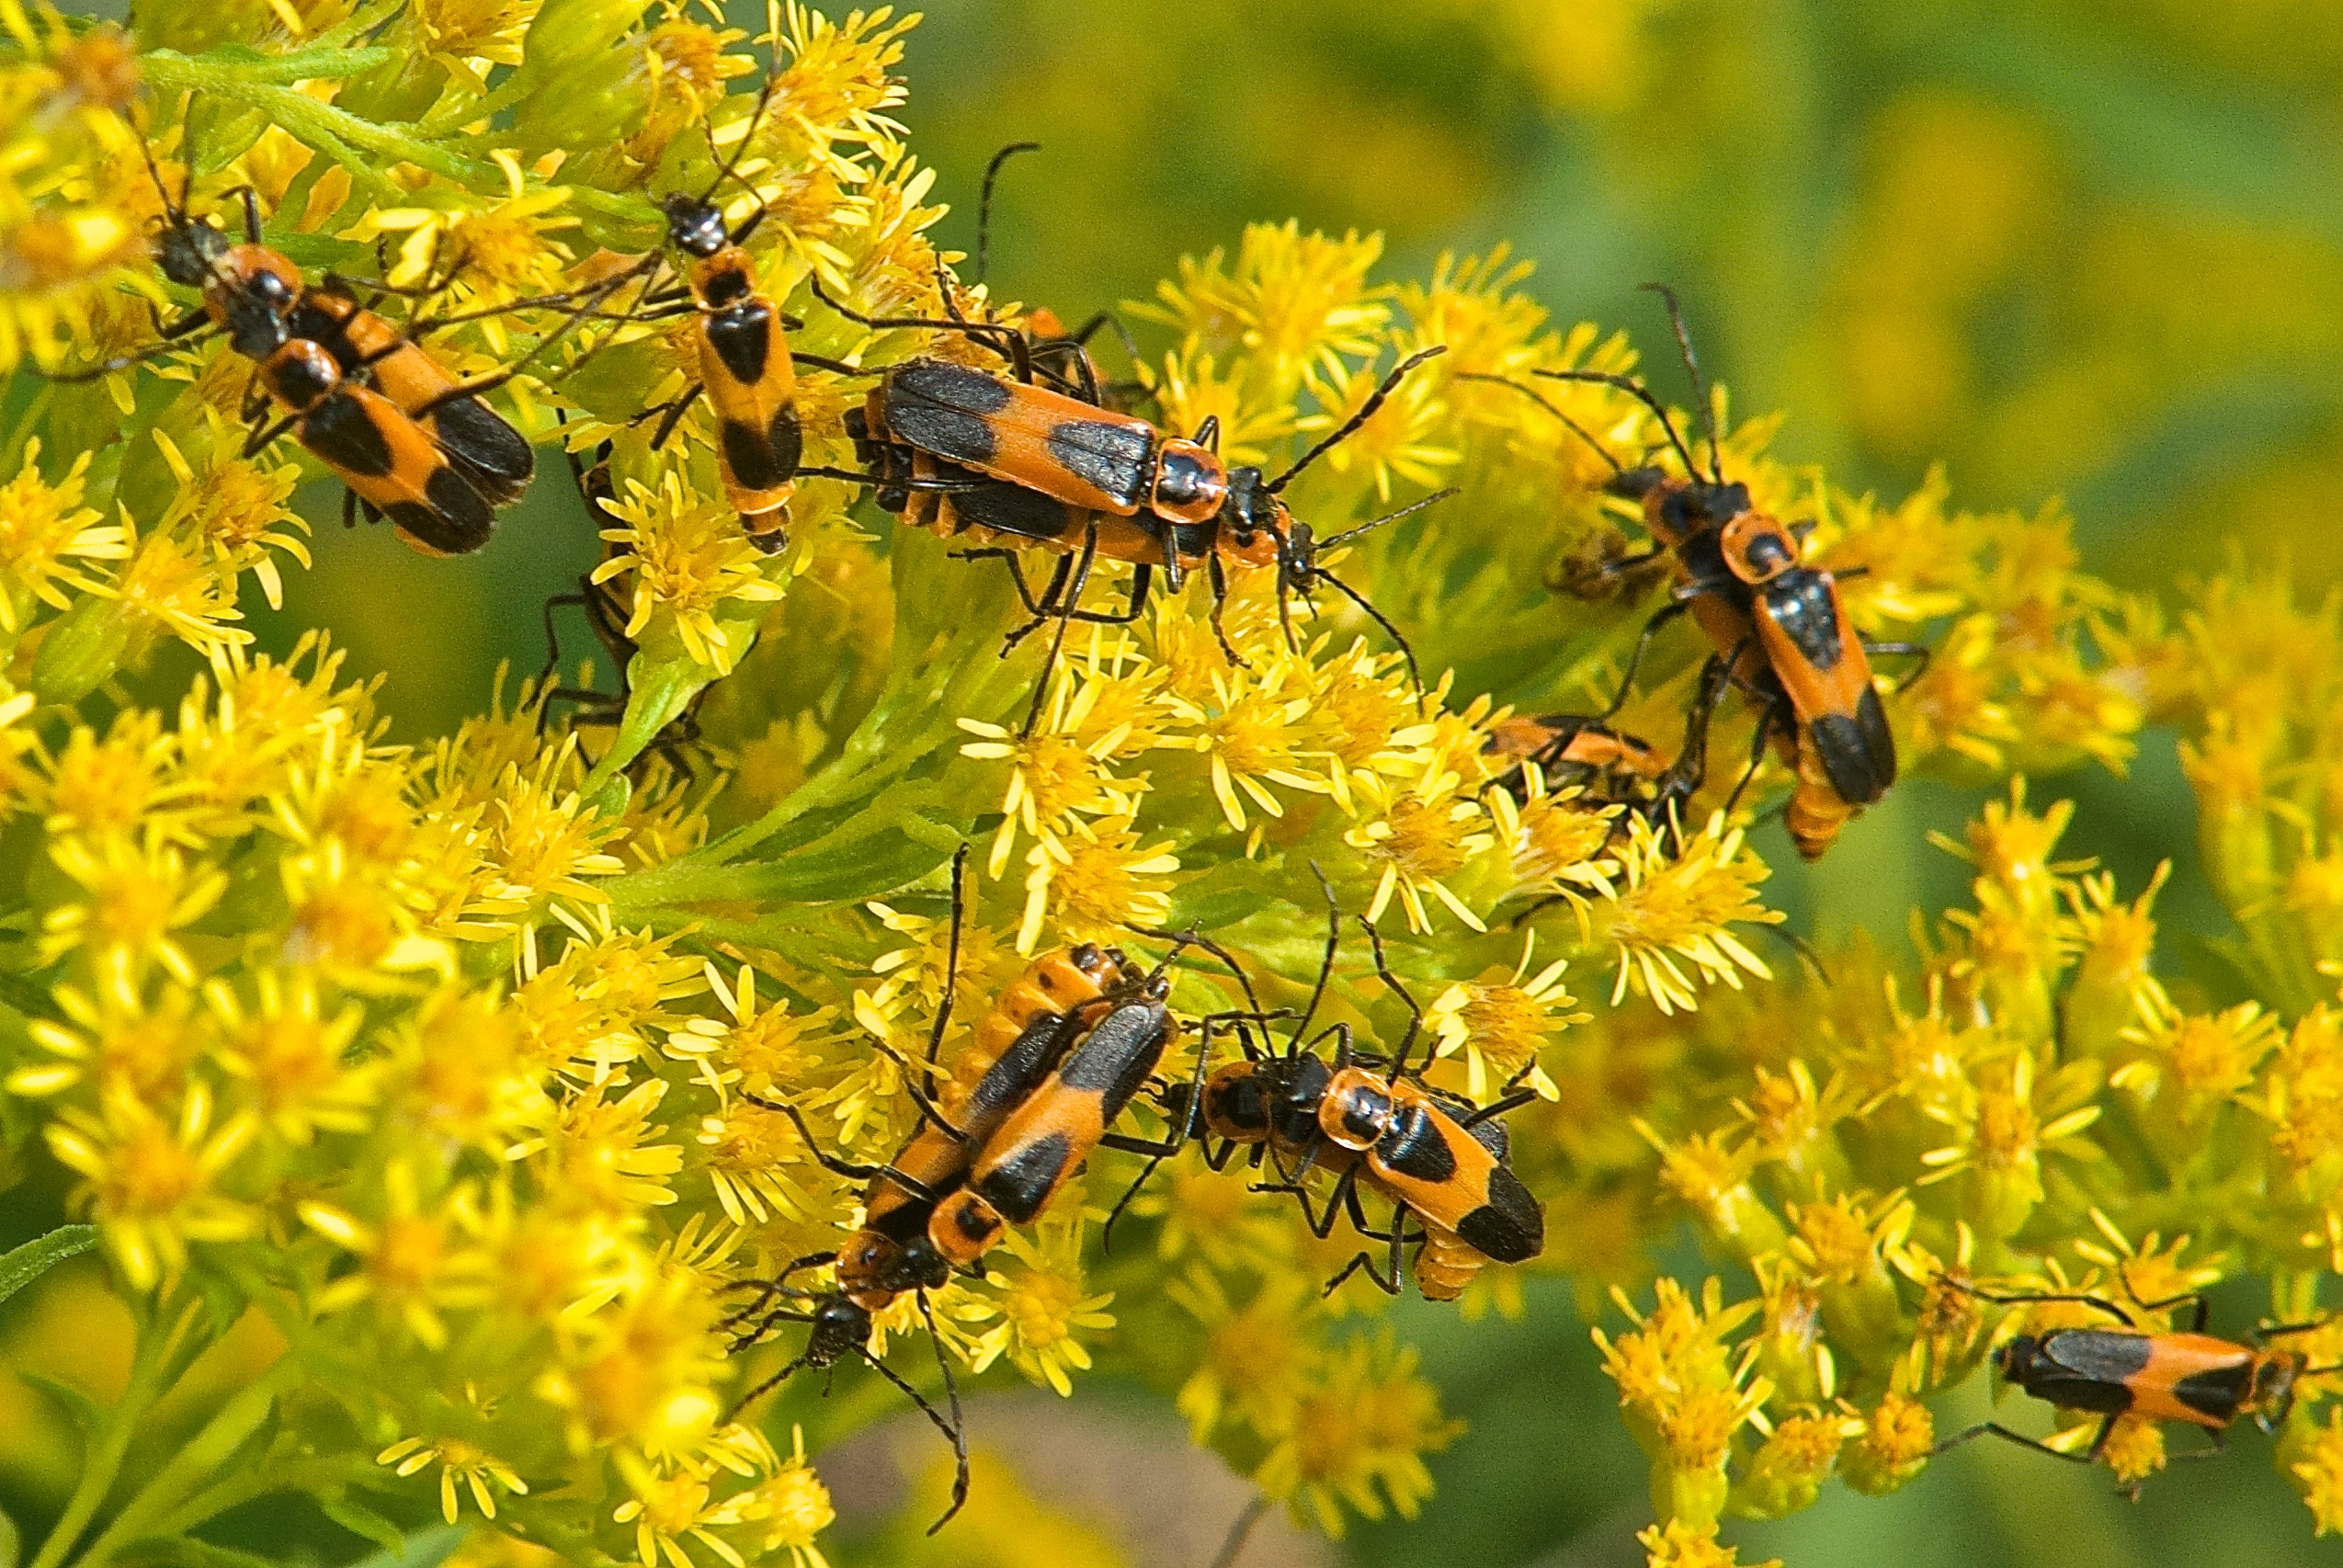 Goldenrod Soldier Beetles on Canada Goldenrod (Solidago canadensis)